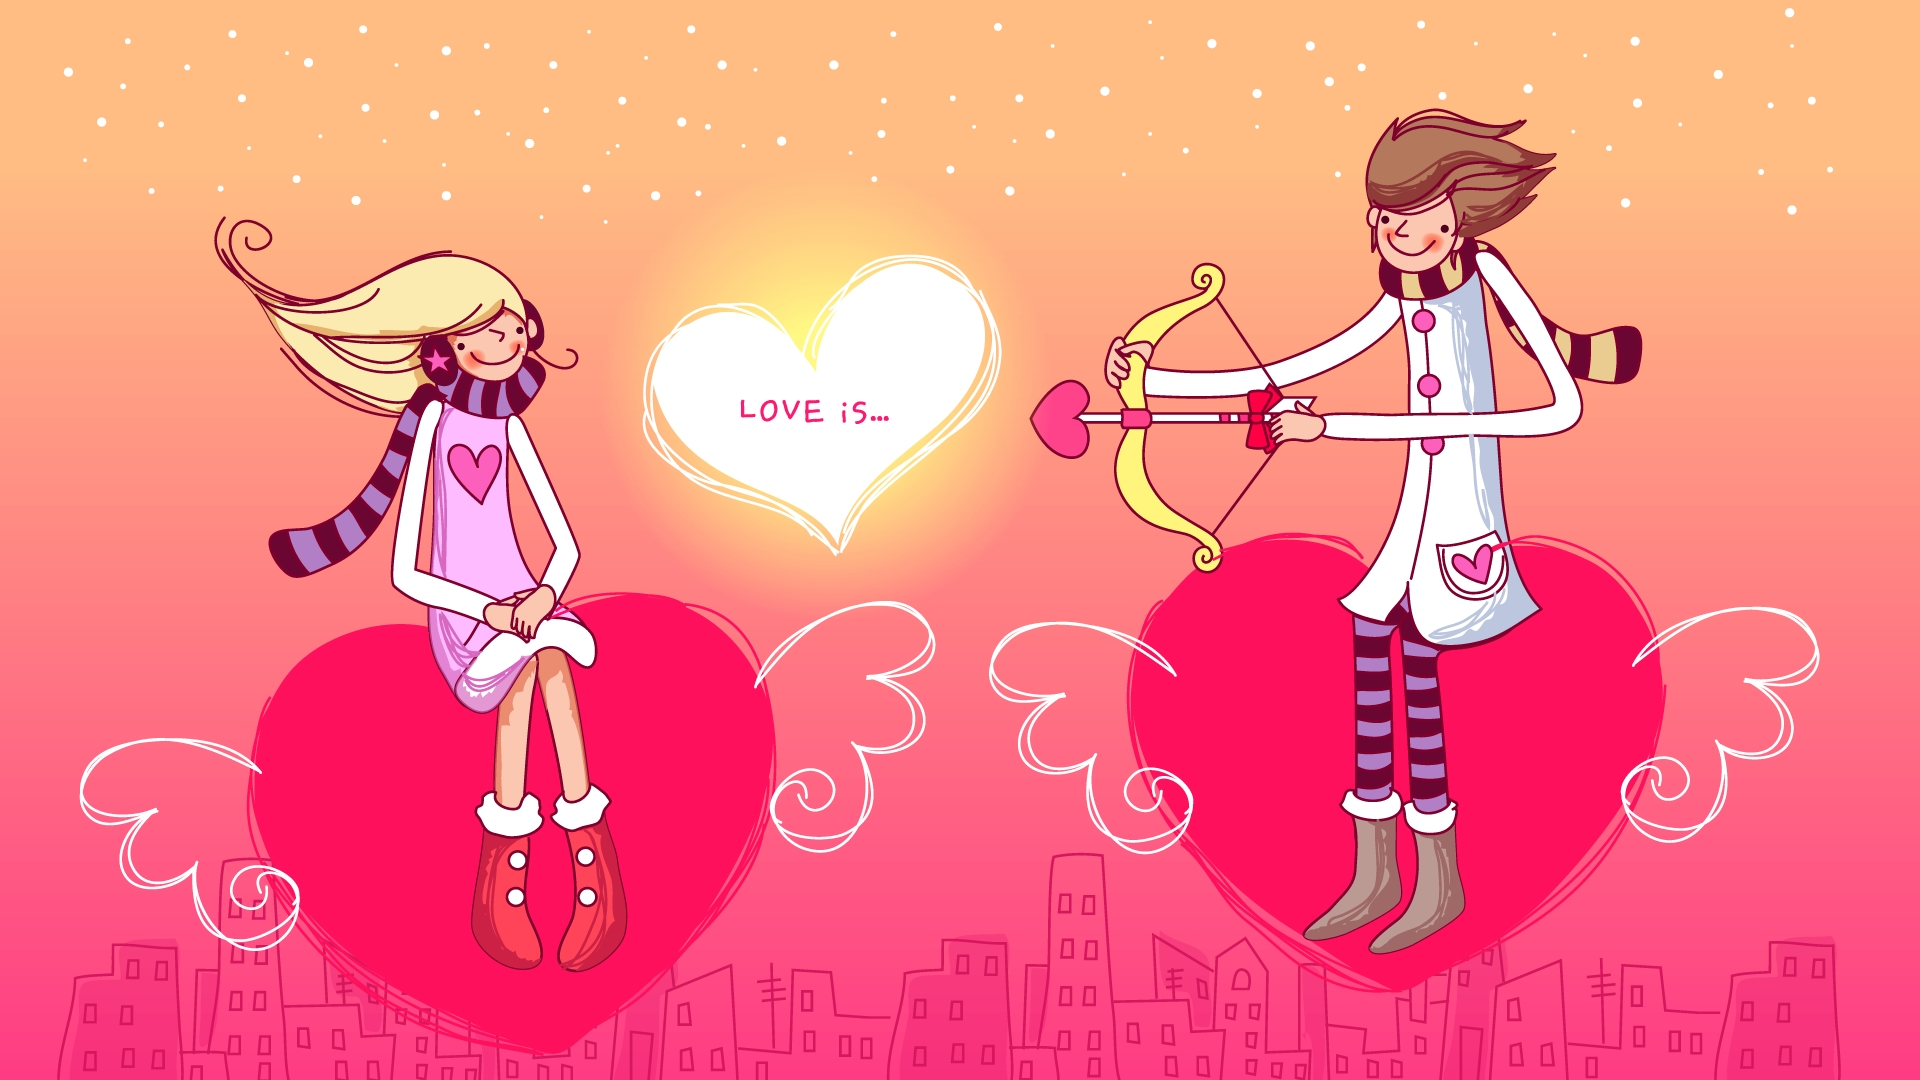 Valentine cartoons wallpaper hd 11723 wallpaper cool - Cartoon valentine wallpaper ...